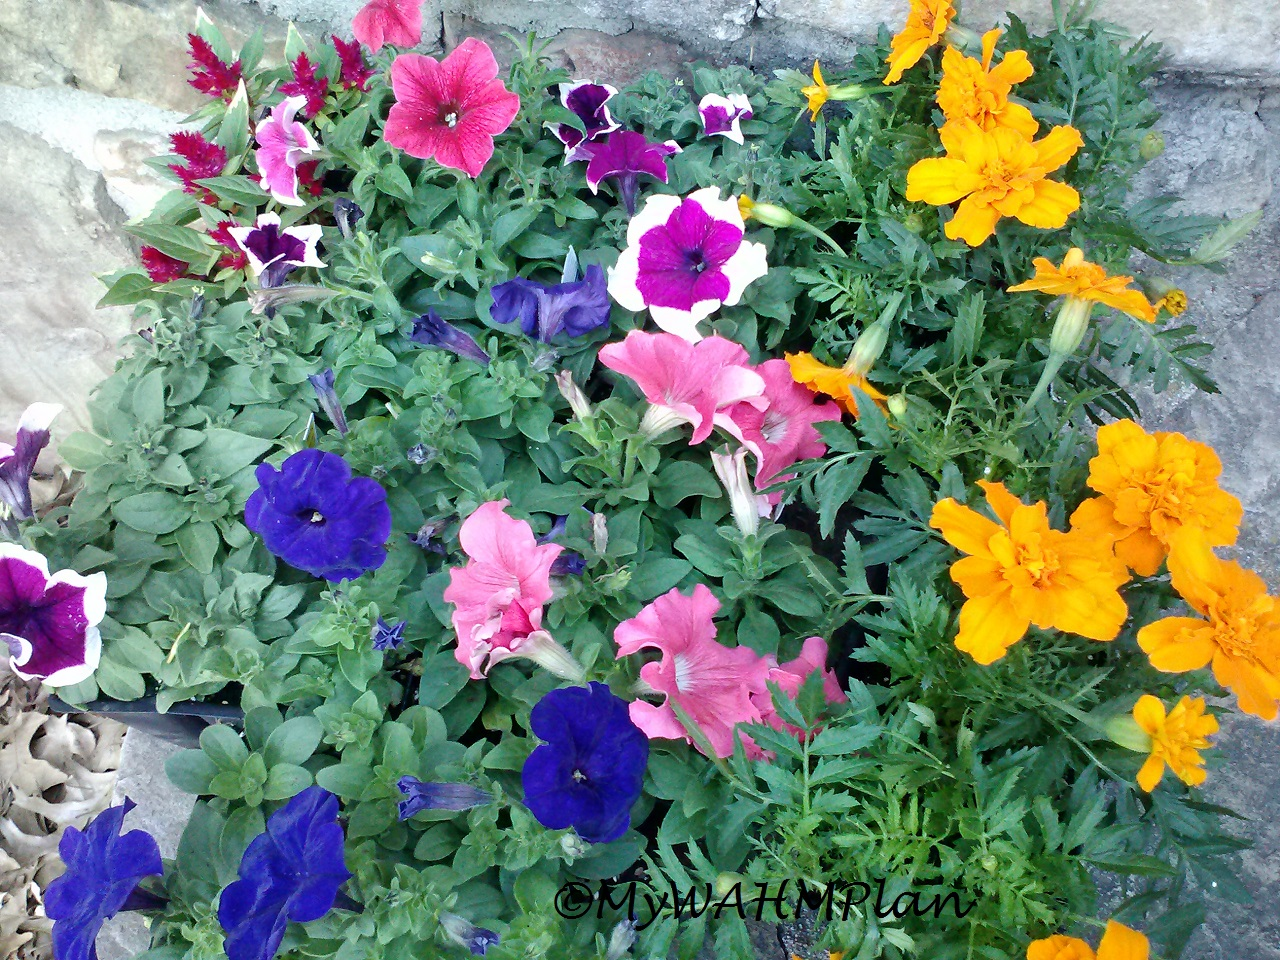 brightly colored flowers